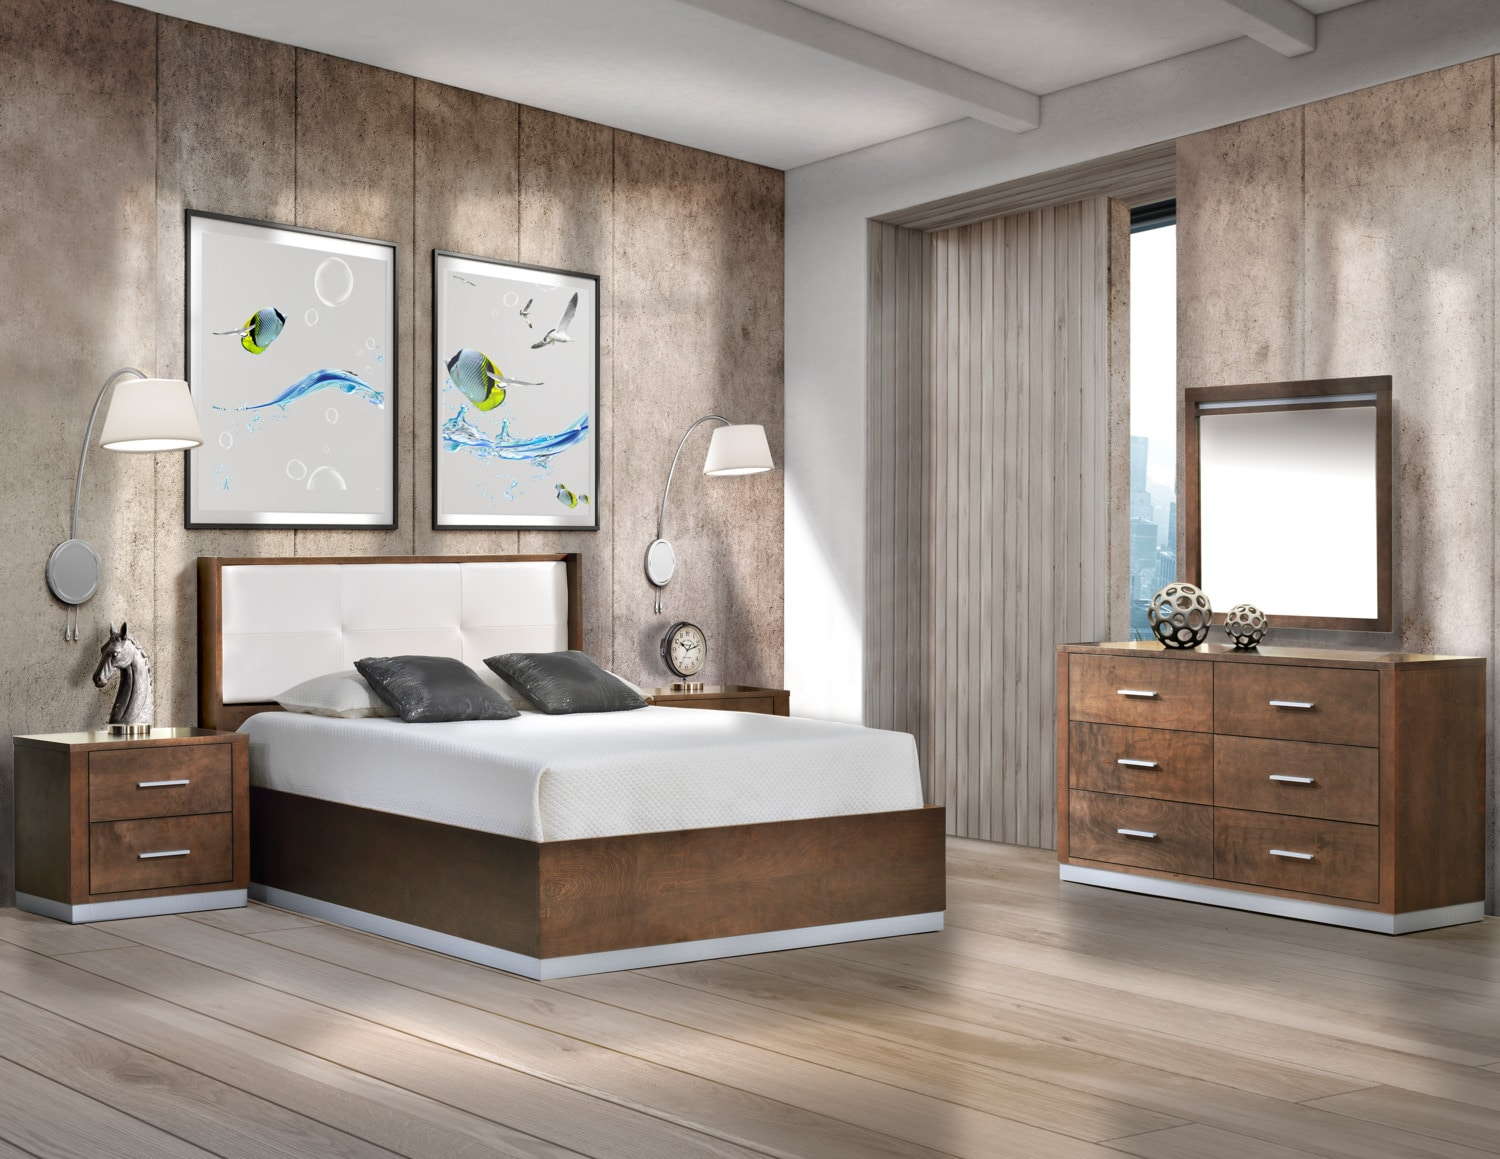 Levi chambre coucher 5 mcx grand noisette meubles l on for Leon meuble quebec